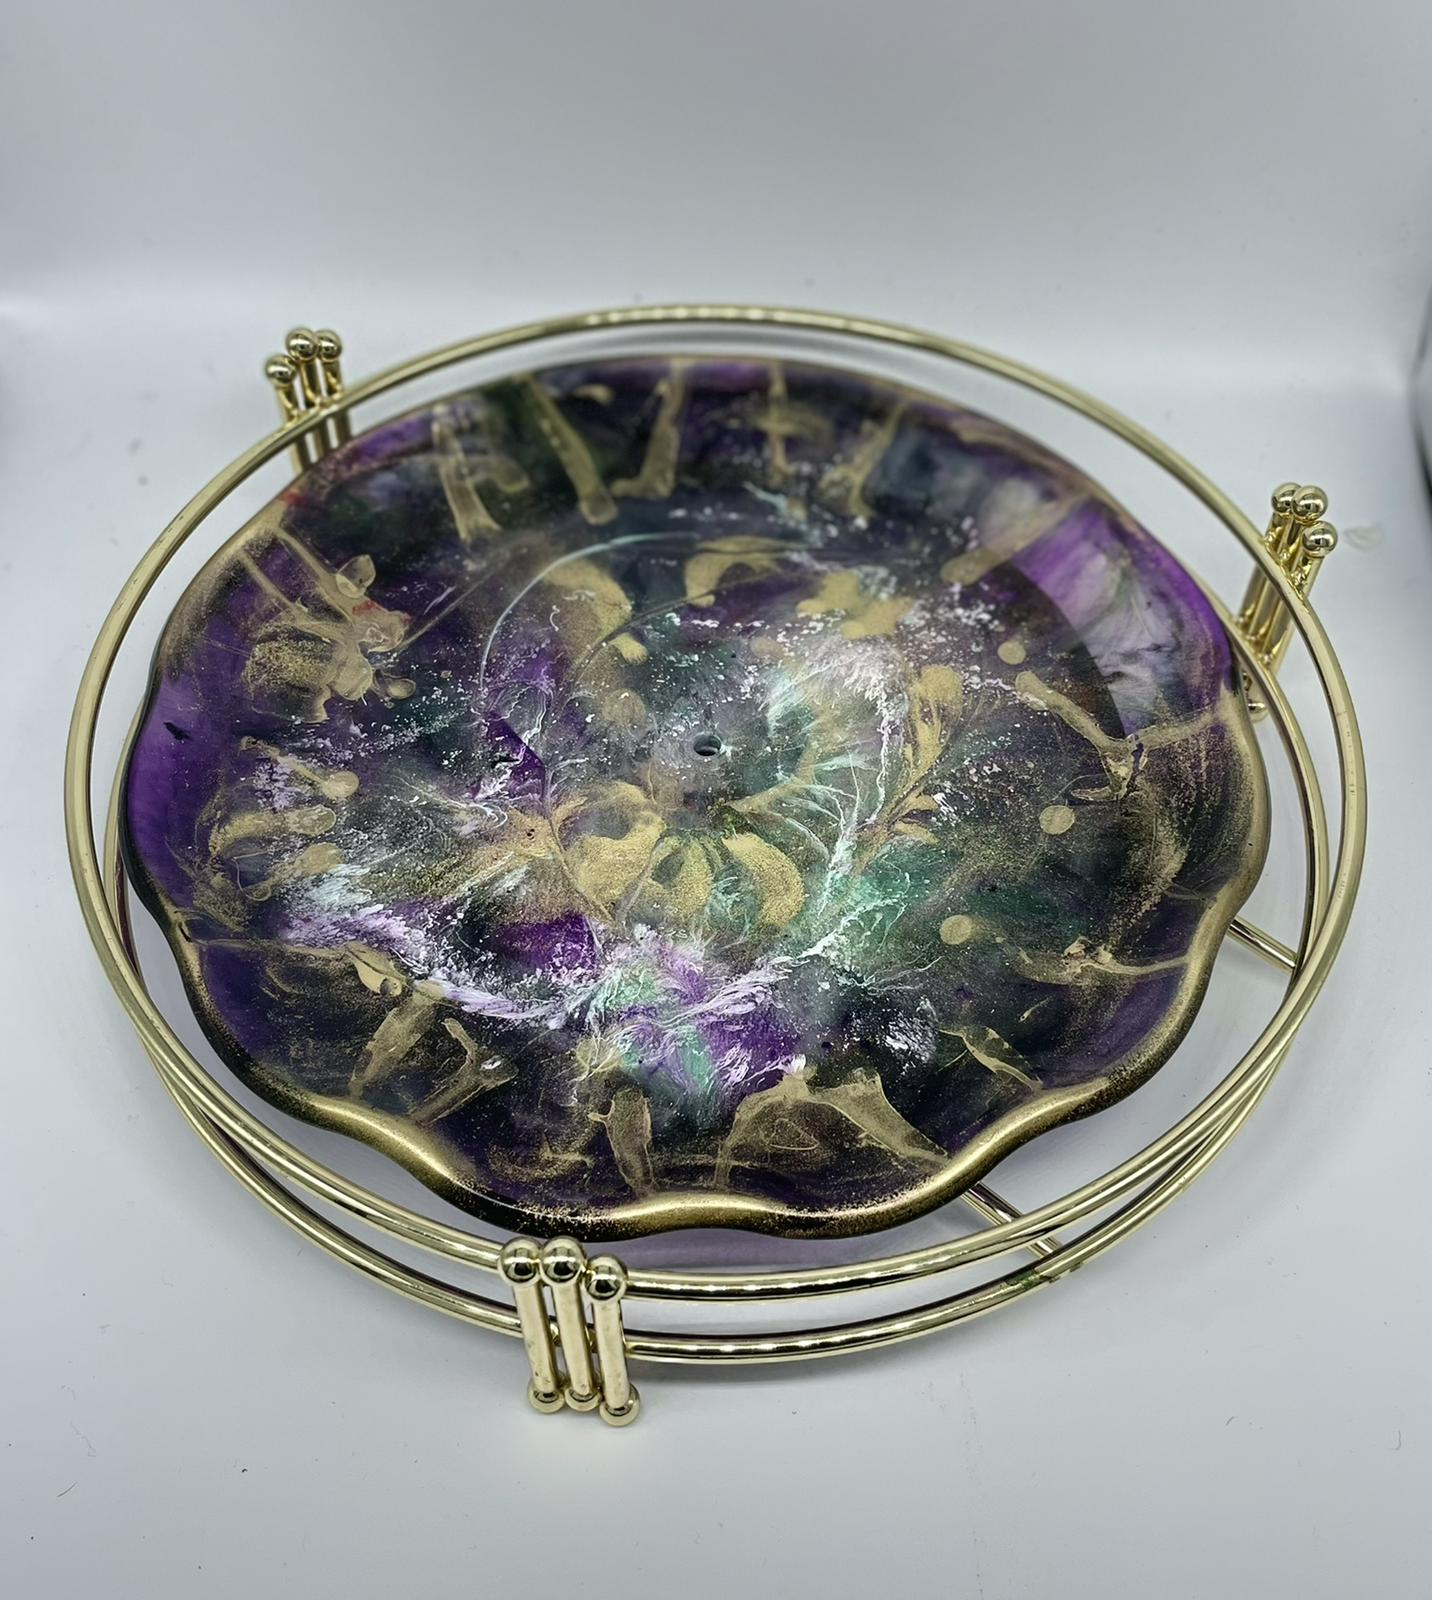 DECORATIVE TRAY - PURPLE AND GOLDEN